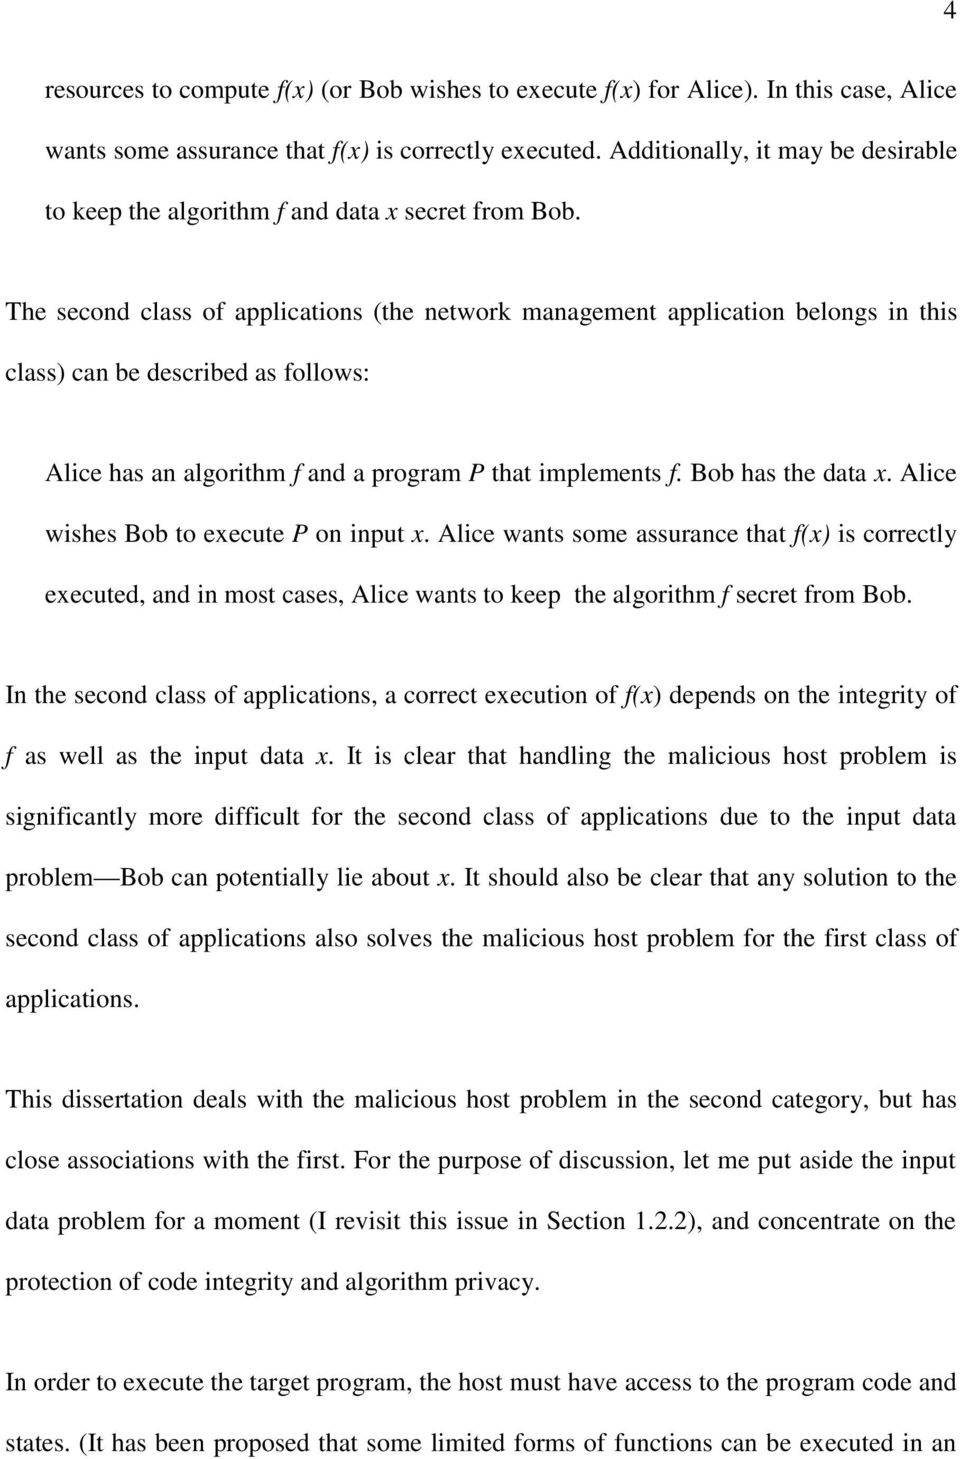 The second class of applications (the network management application belongs in this class) can be described as follows: Alice has an algorithm f and a program P that implements f. Bob has the data x.